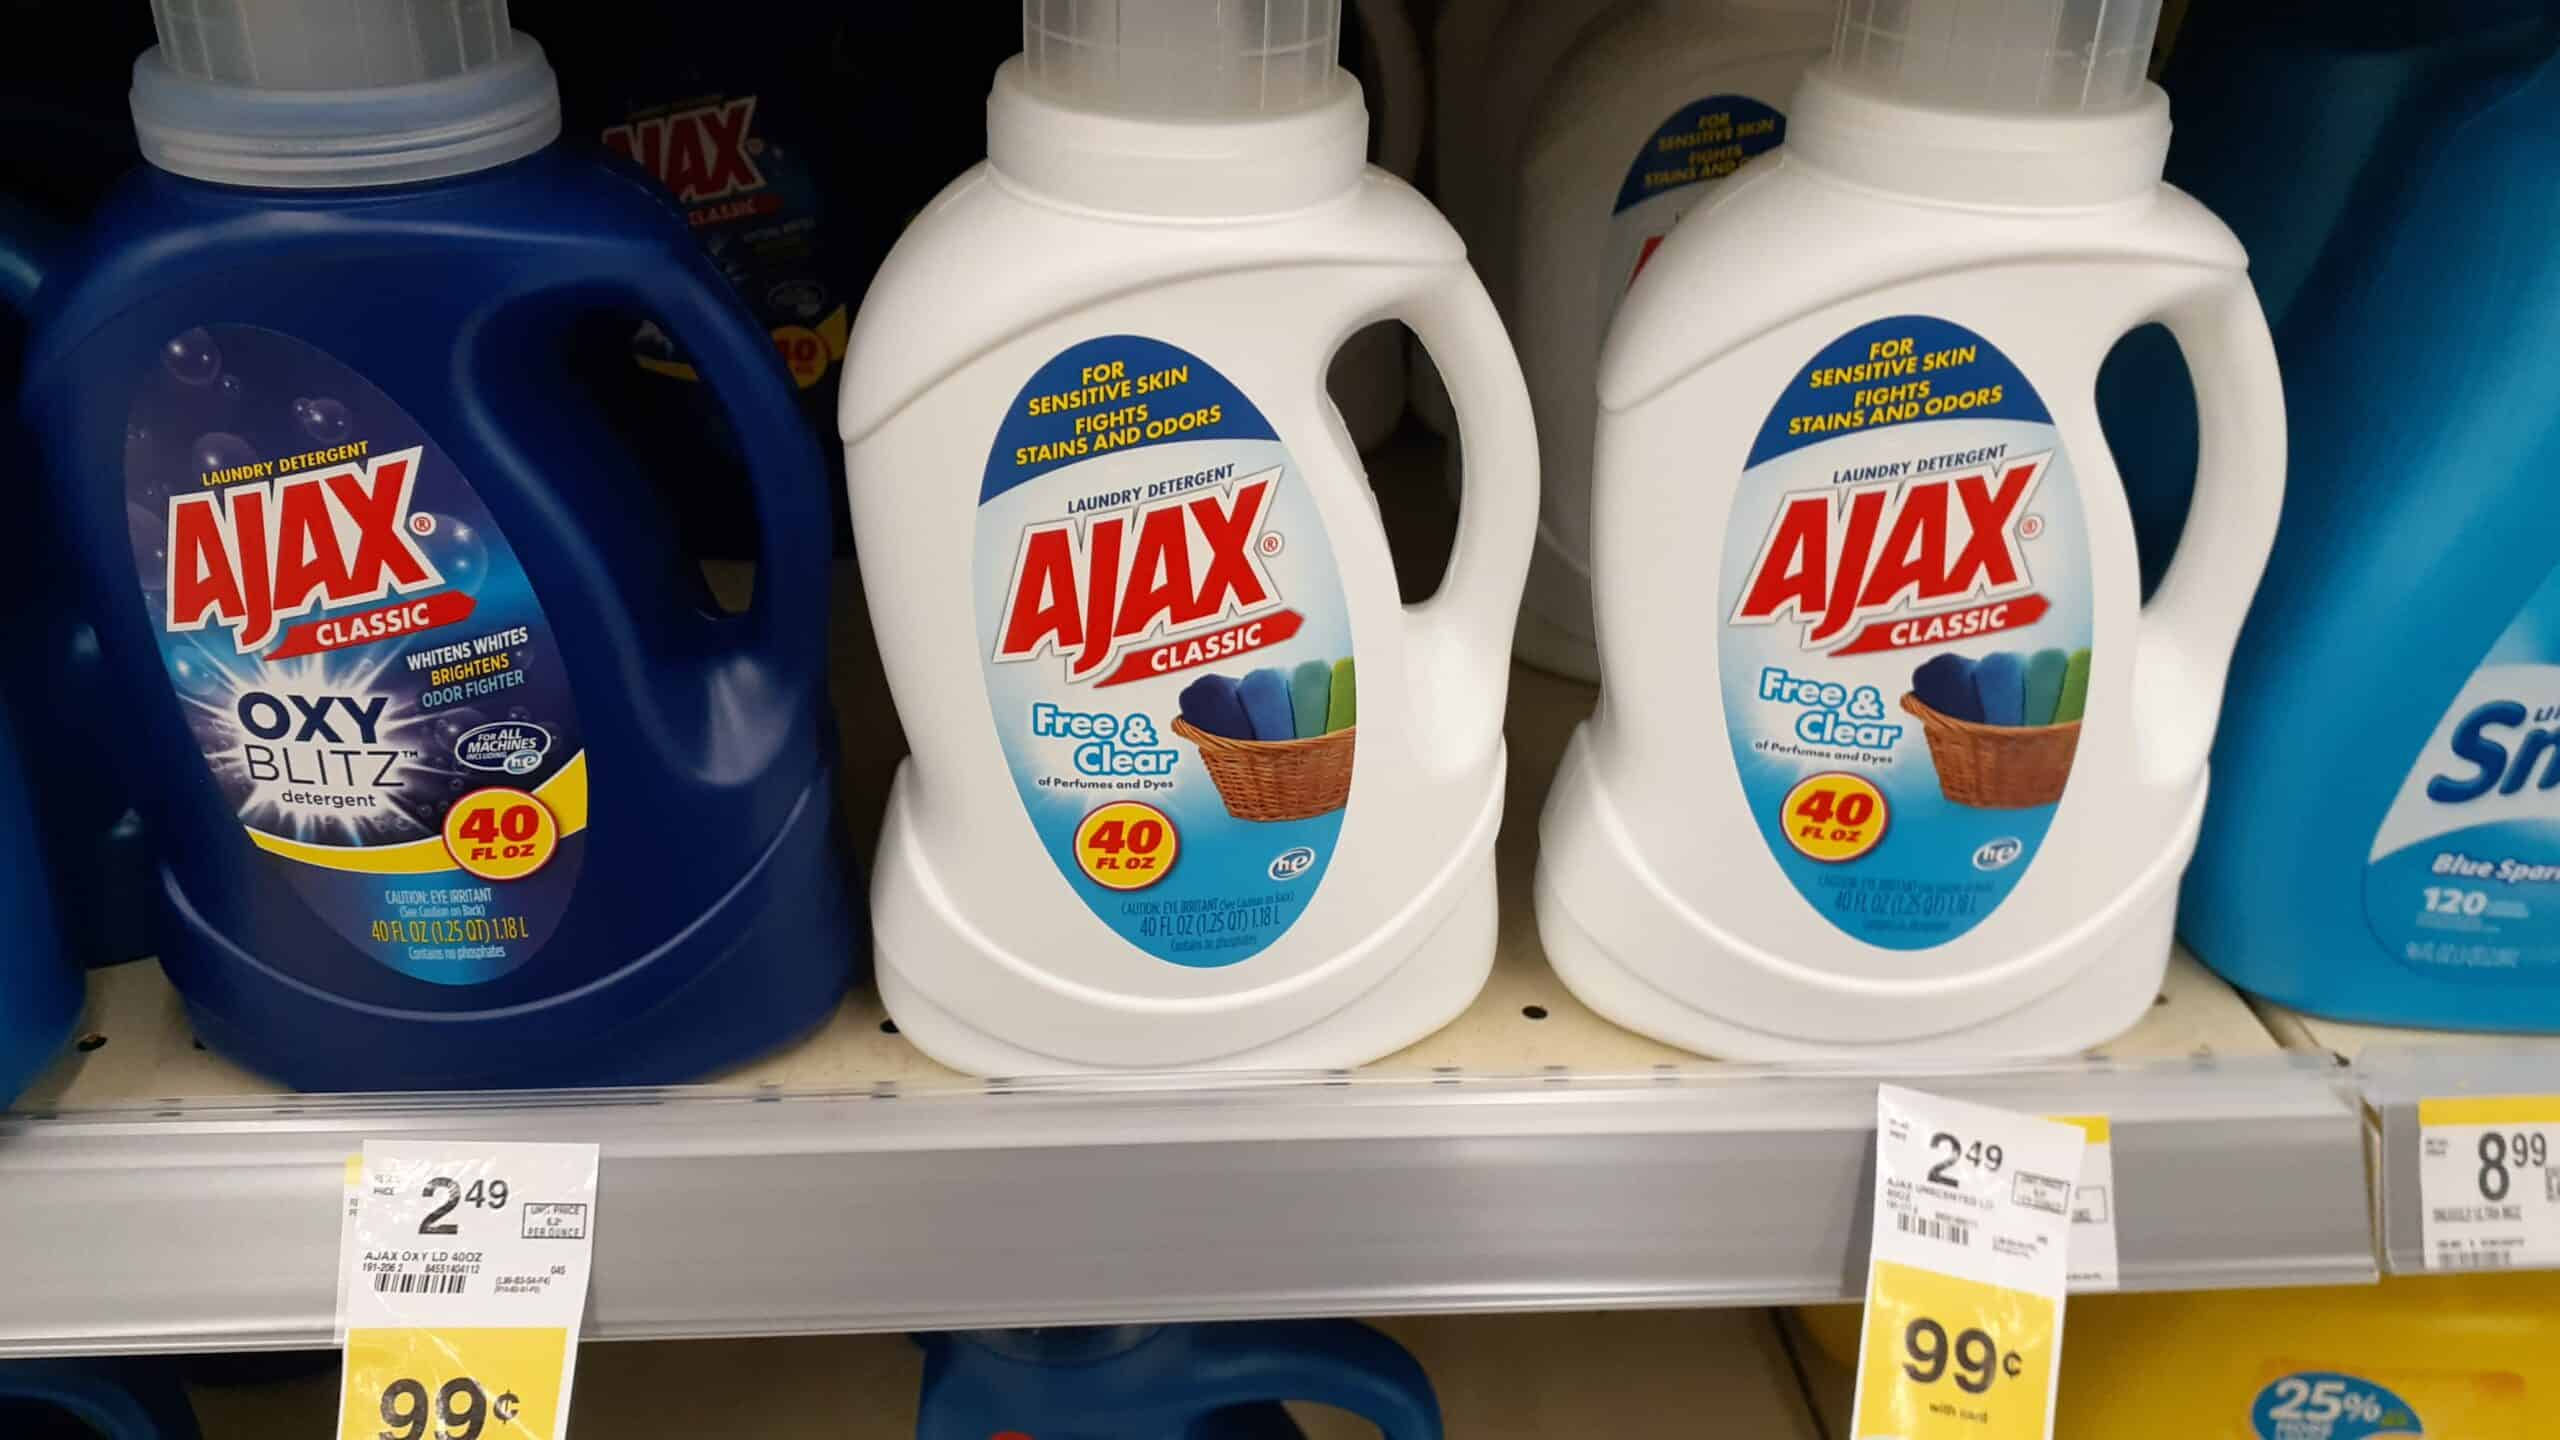 Ajax Laundry Detergent at Walgreens